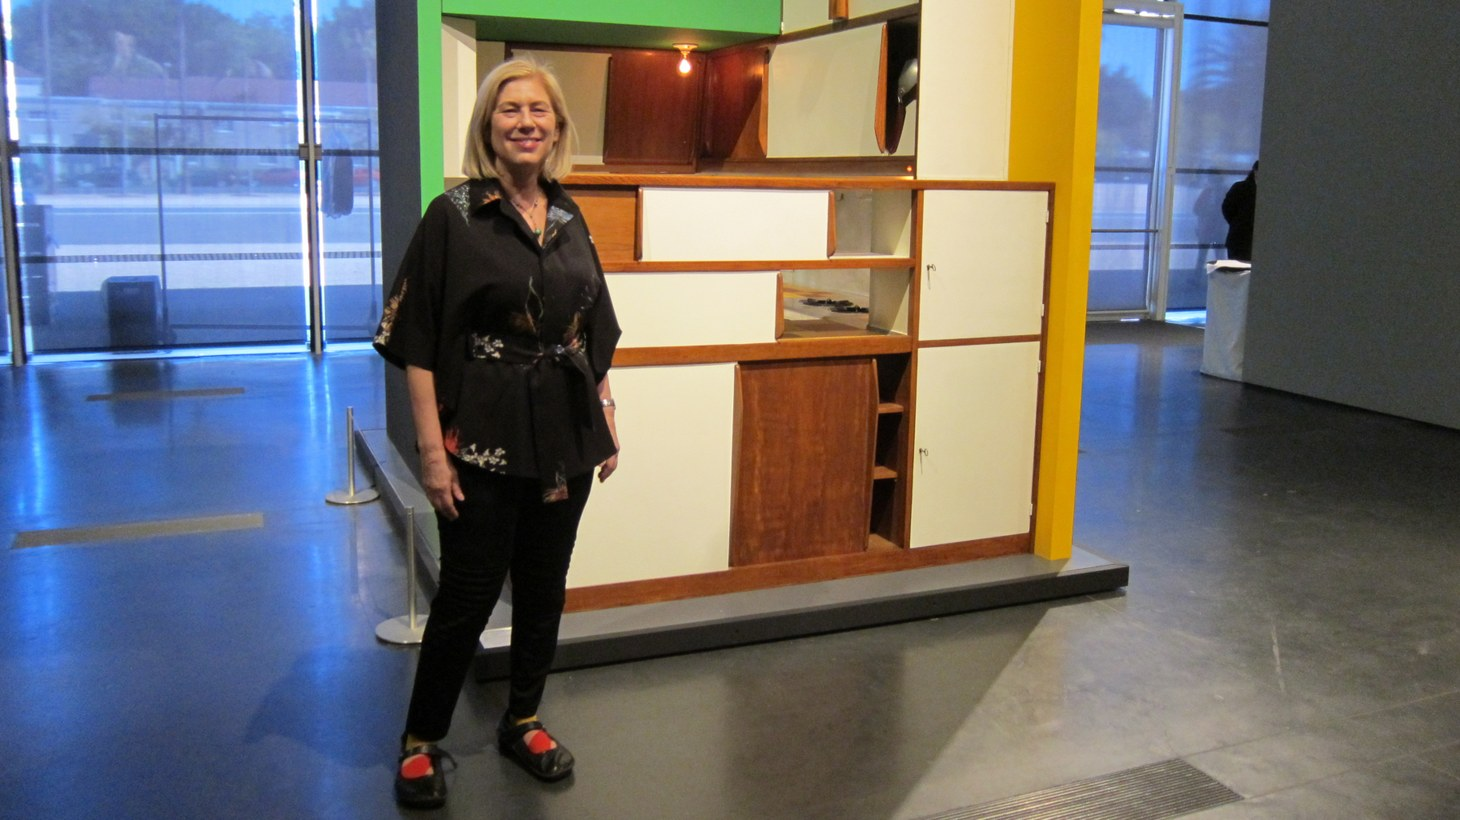 LACMA curator Wendy Kaplan poses with the Charlotte Perriand-designed kitchen.